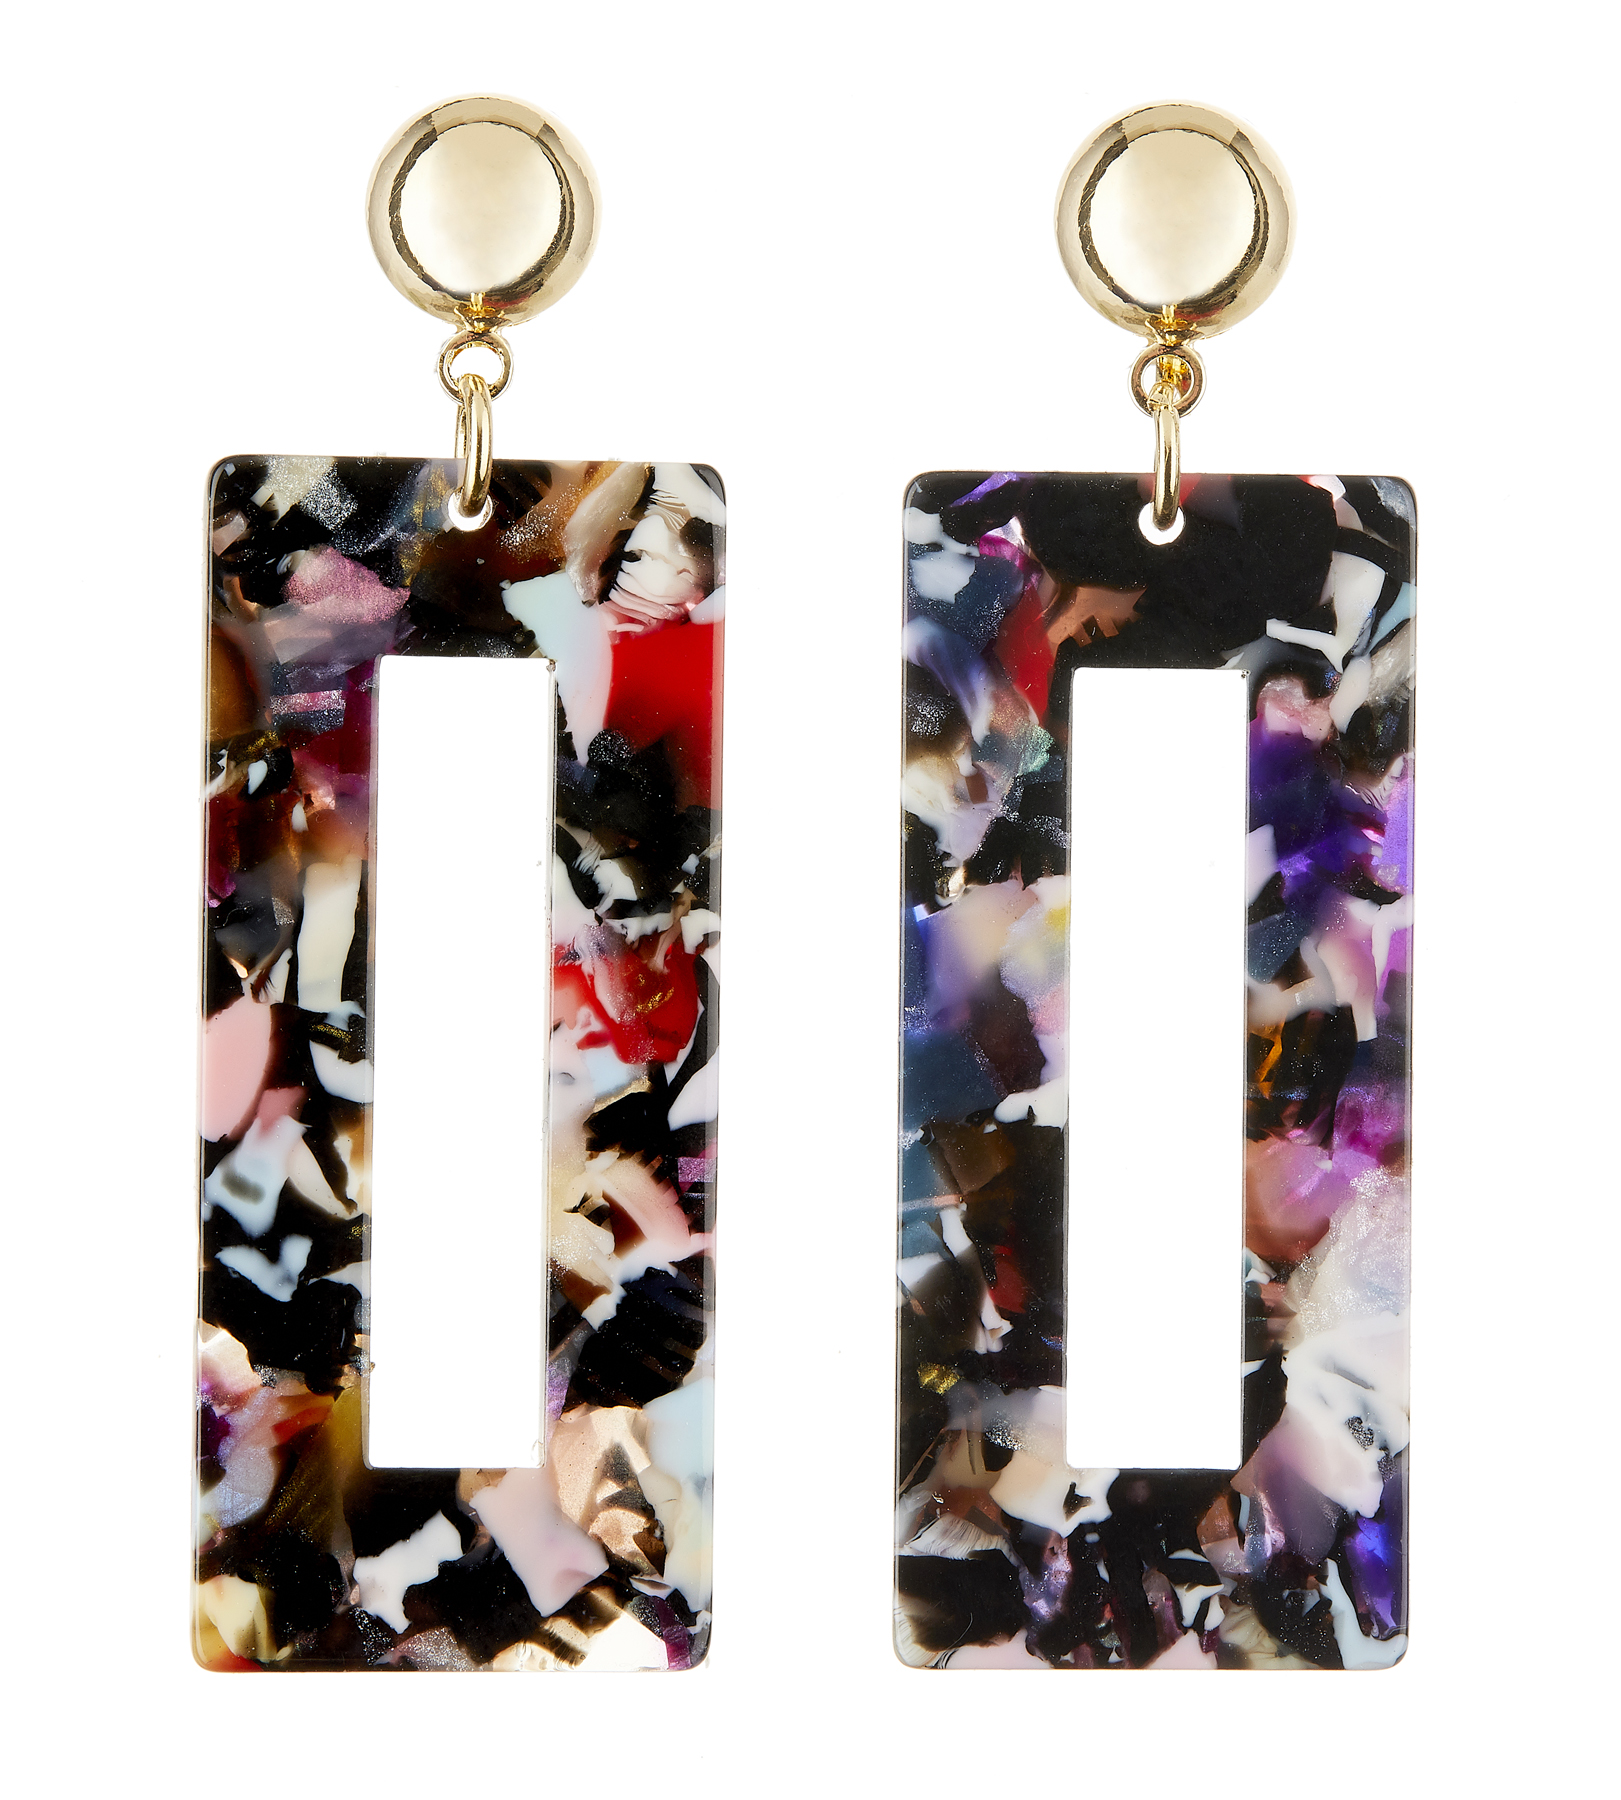 Clip On Earrings - Eada M - gold drop earring with multi coloured acrylic